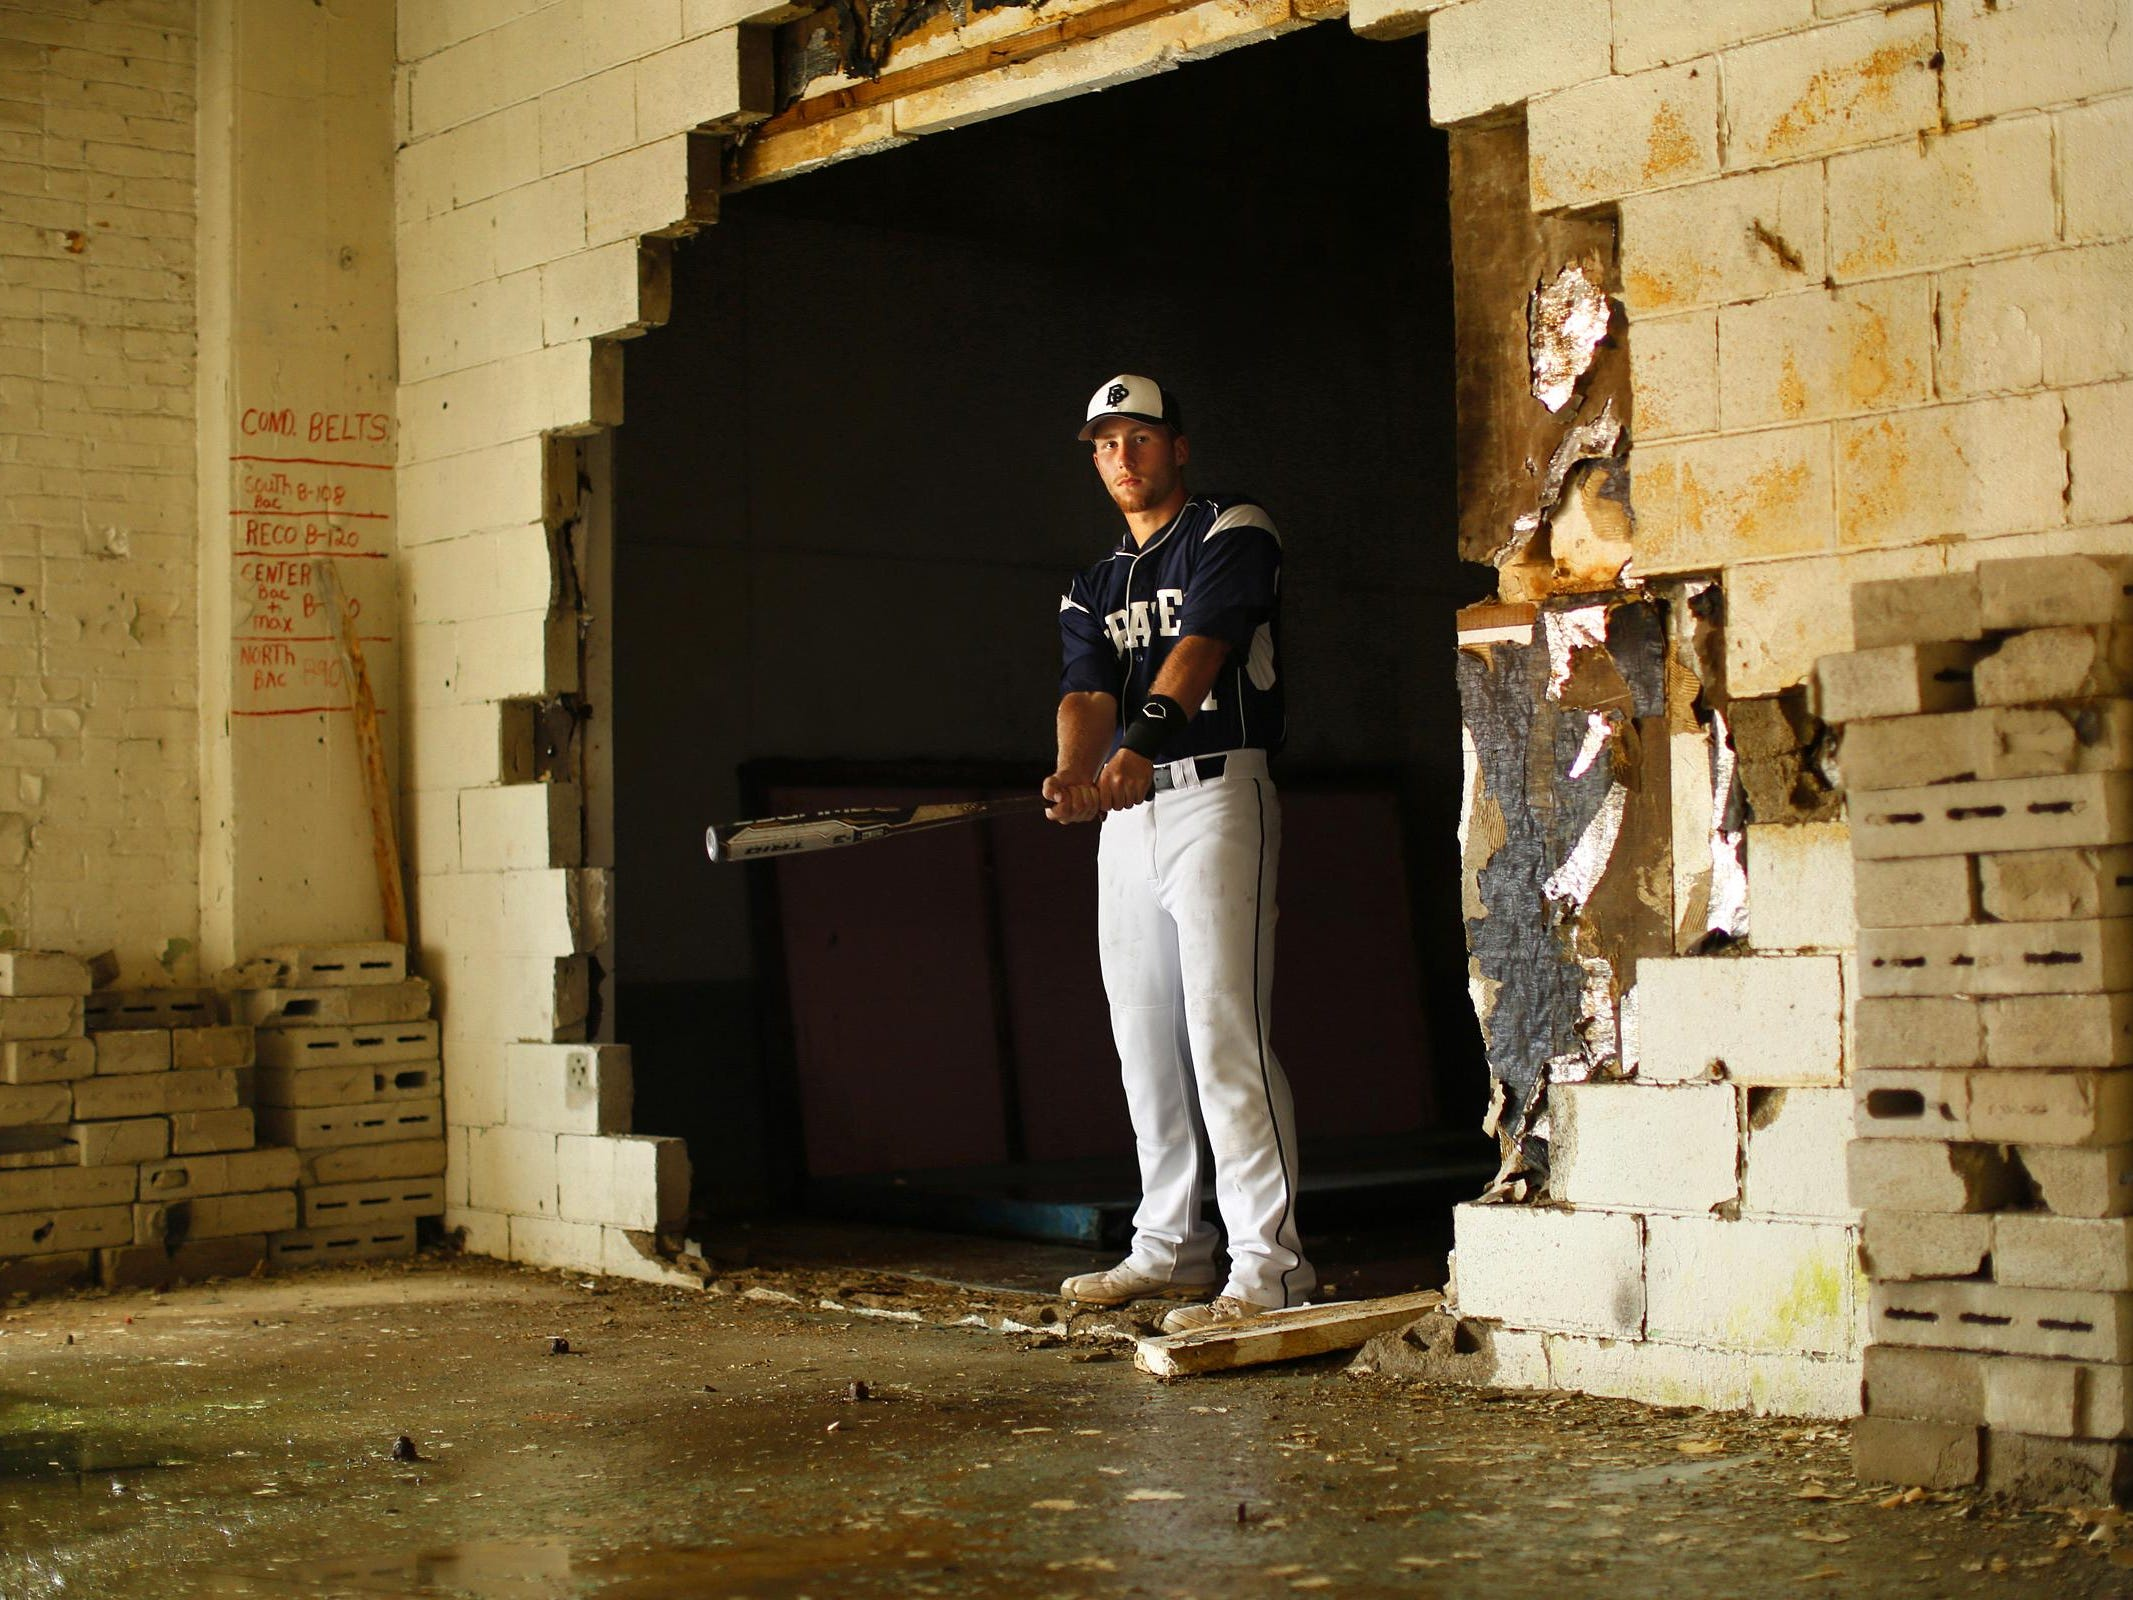 Bay Port's Joe Baier, shown inside the former Larsen Canning Company in downtown's Broadway District, is the All-USA Press-Gazette Media baseball player of the year.